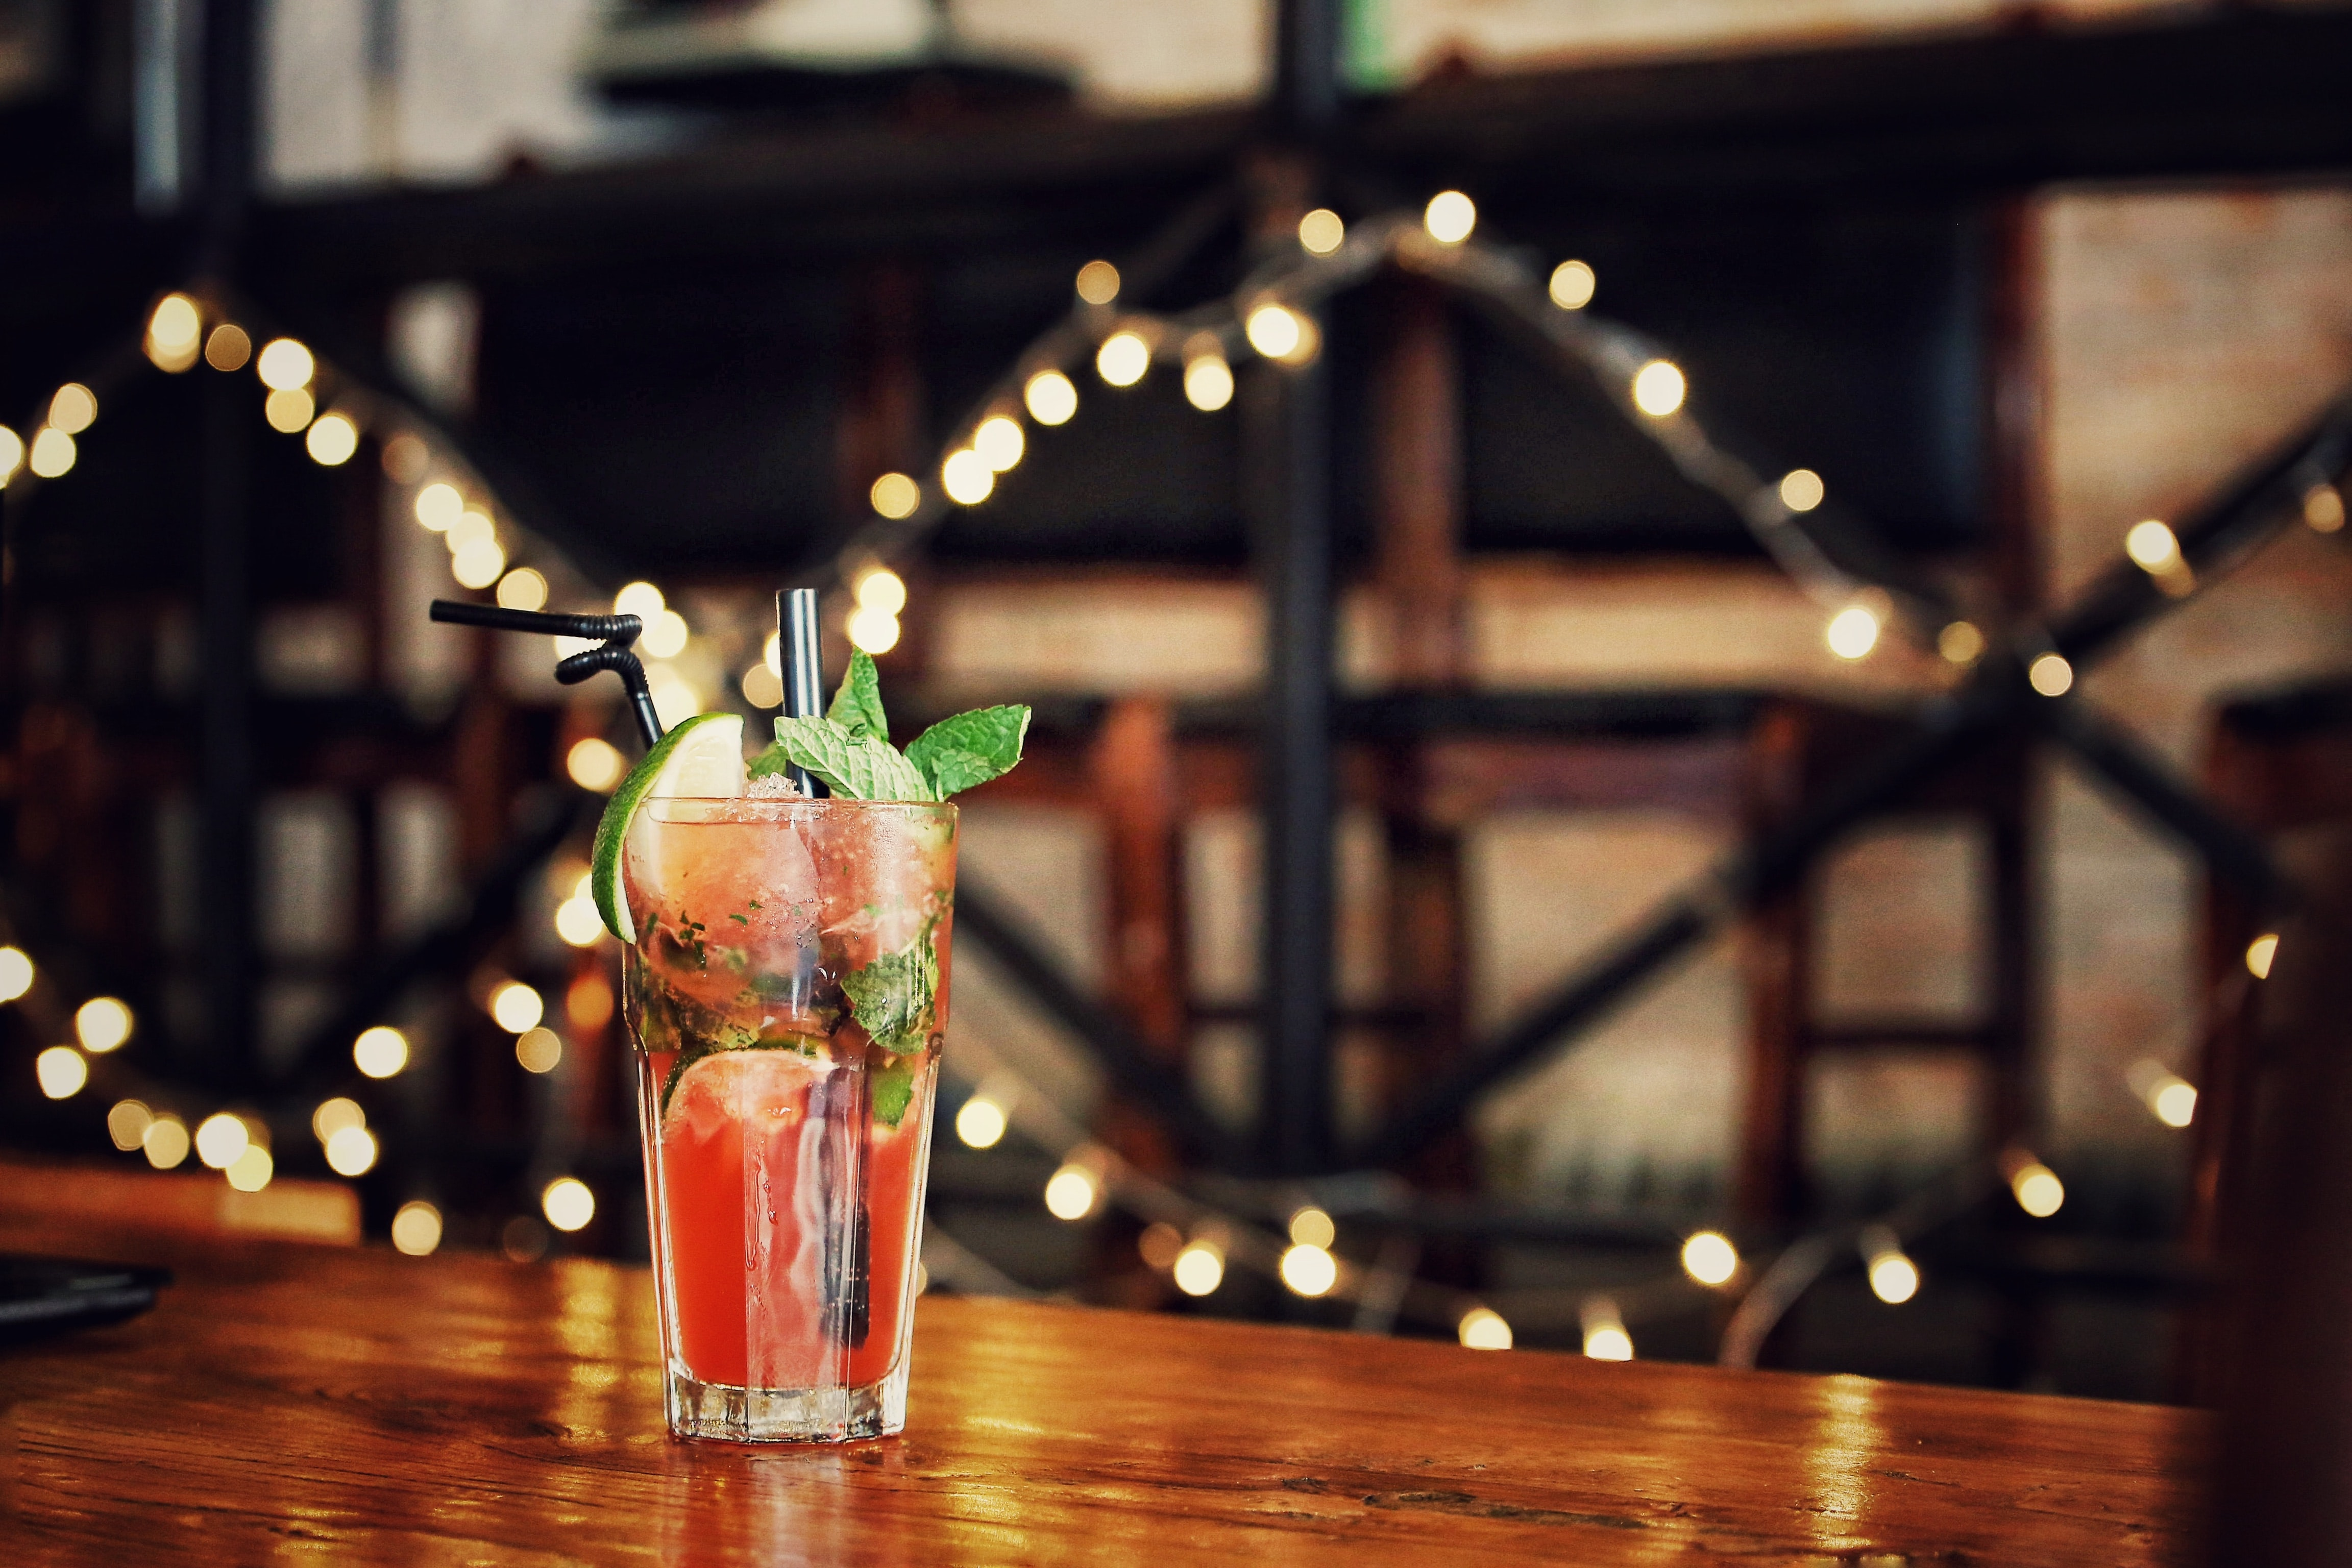 A garnished cocktail beverage with straw and fairy lights behind it